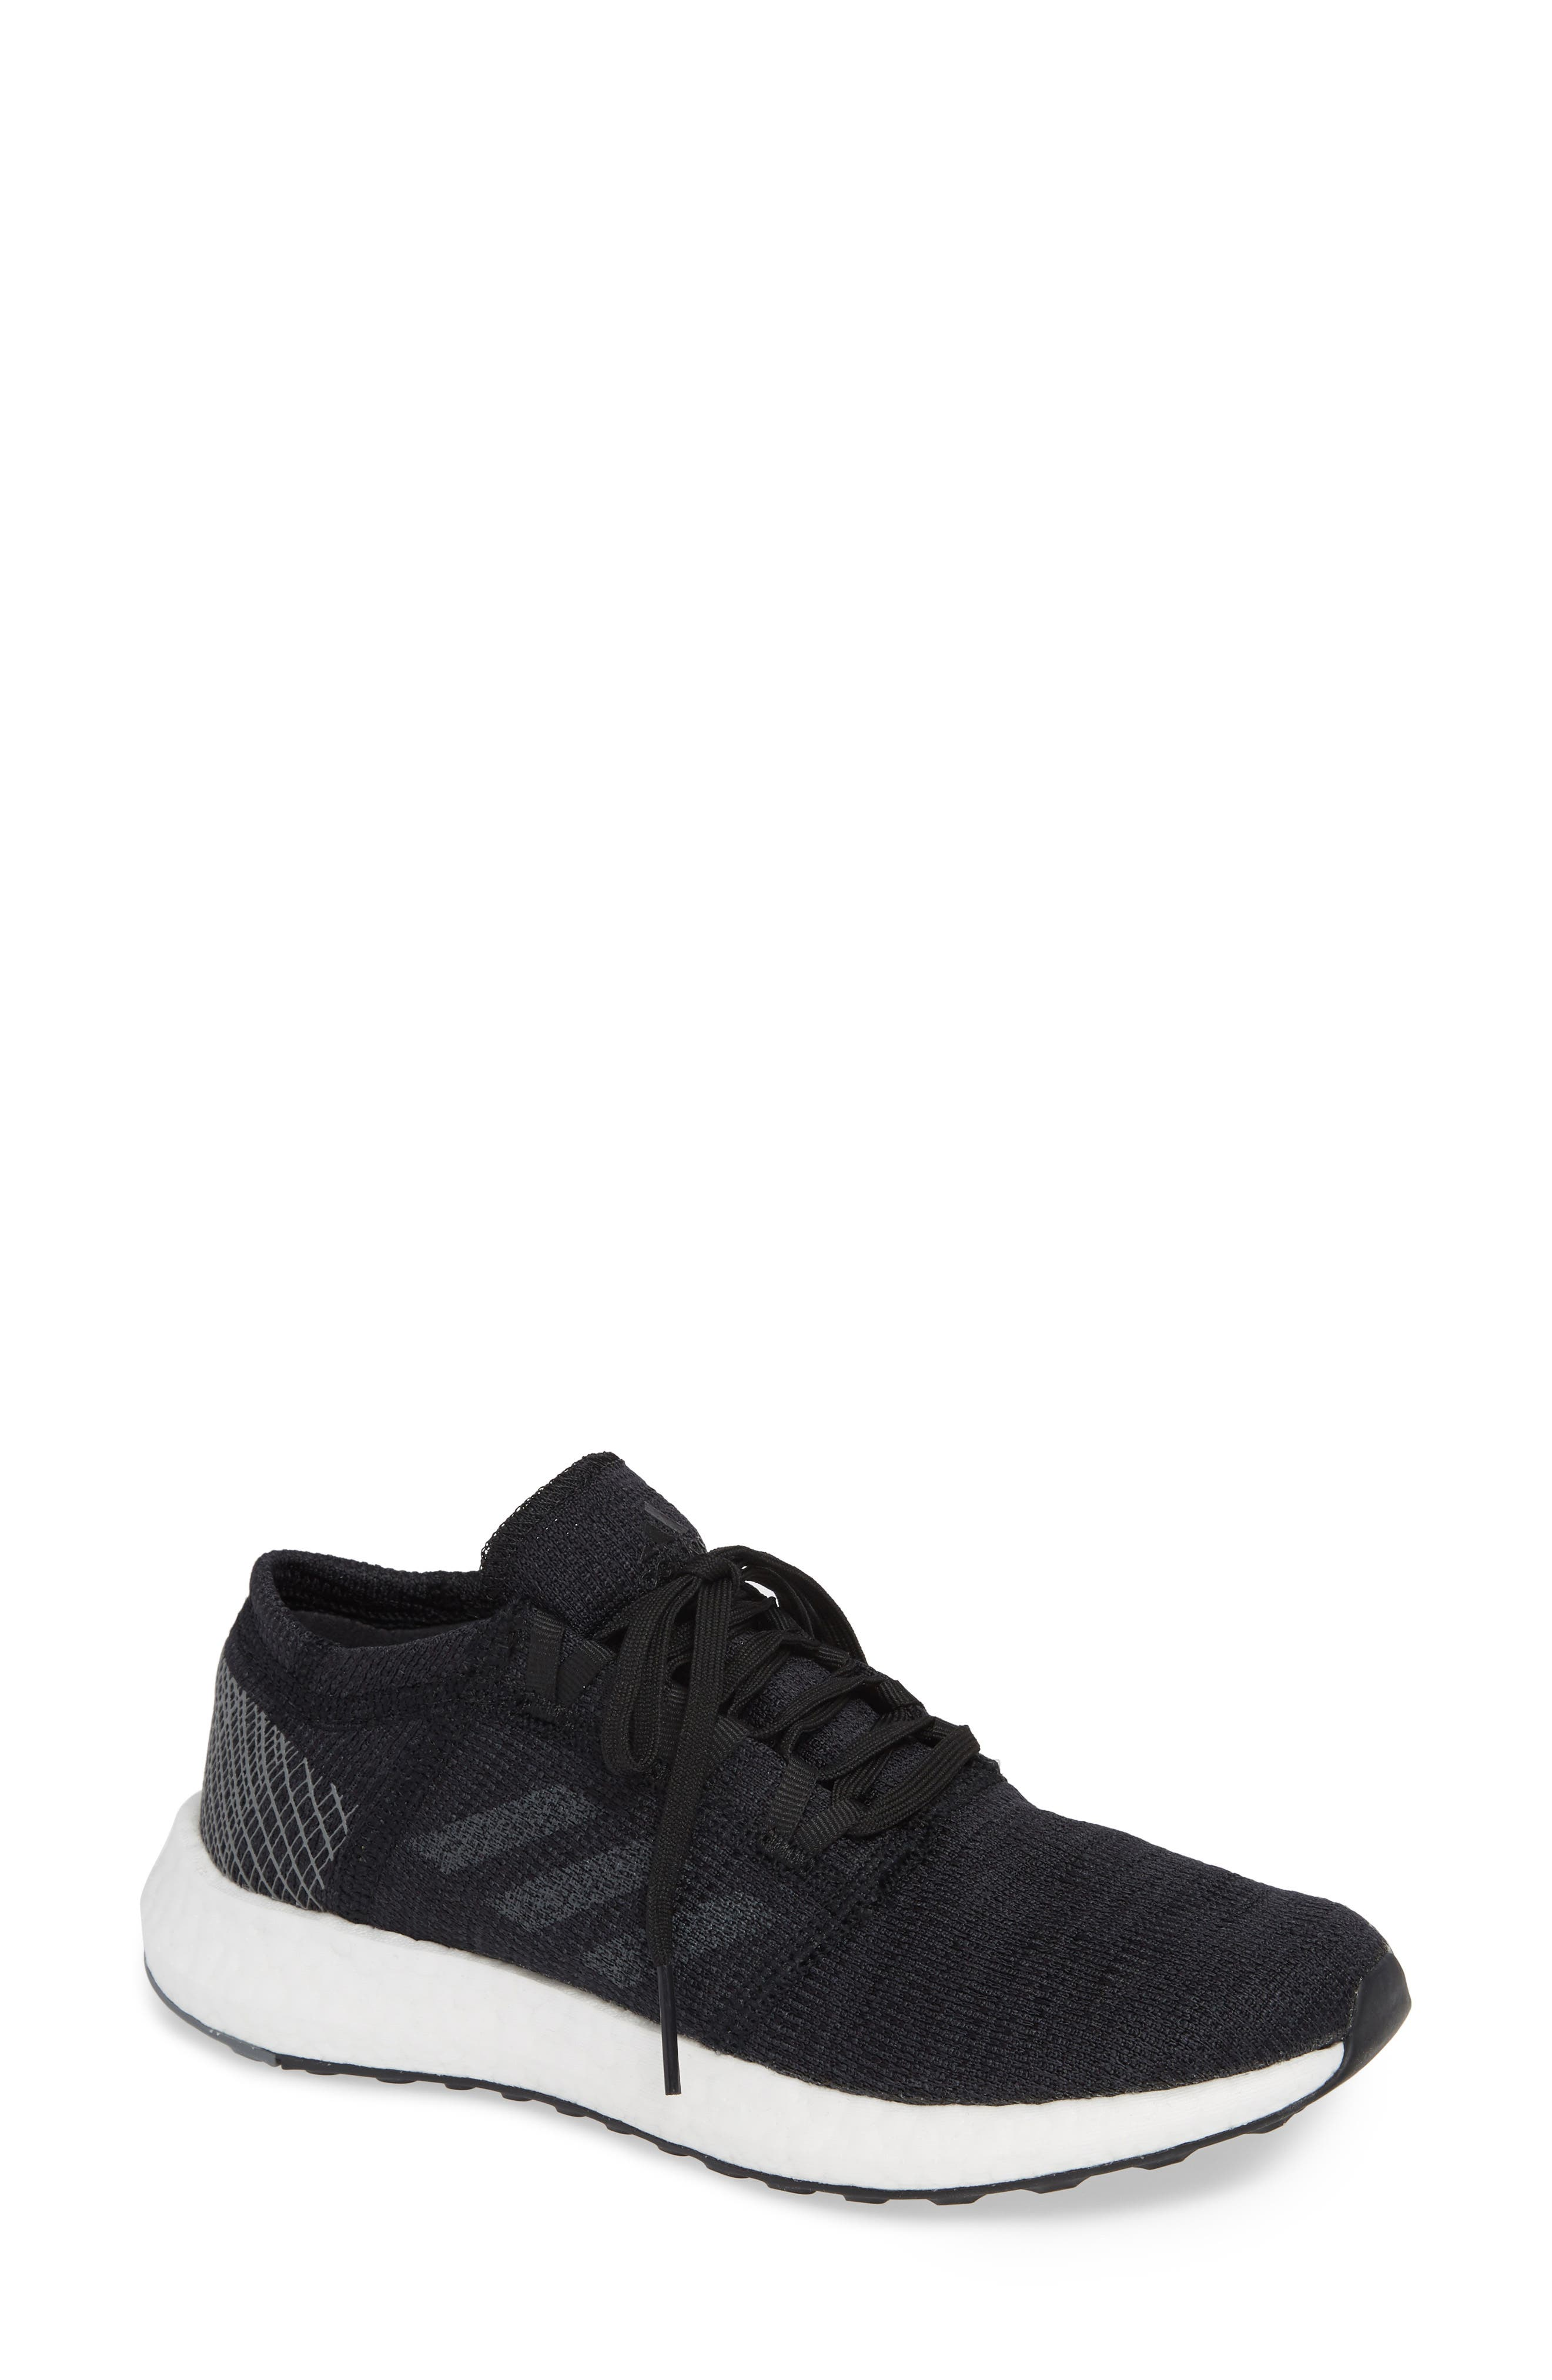 adidas shoes womens black